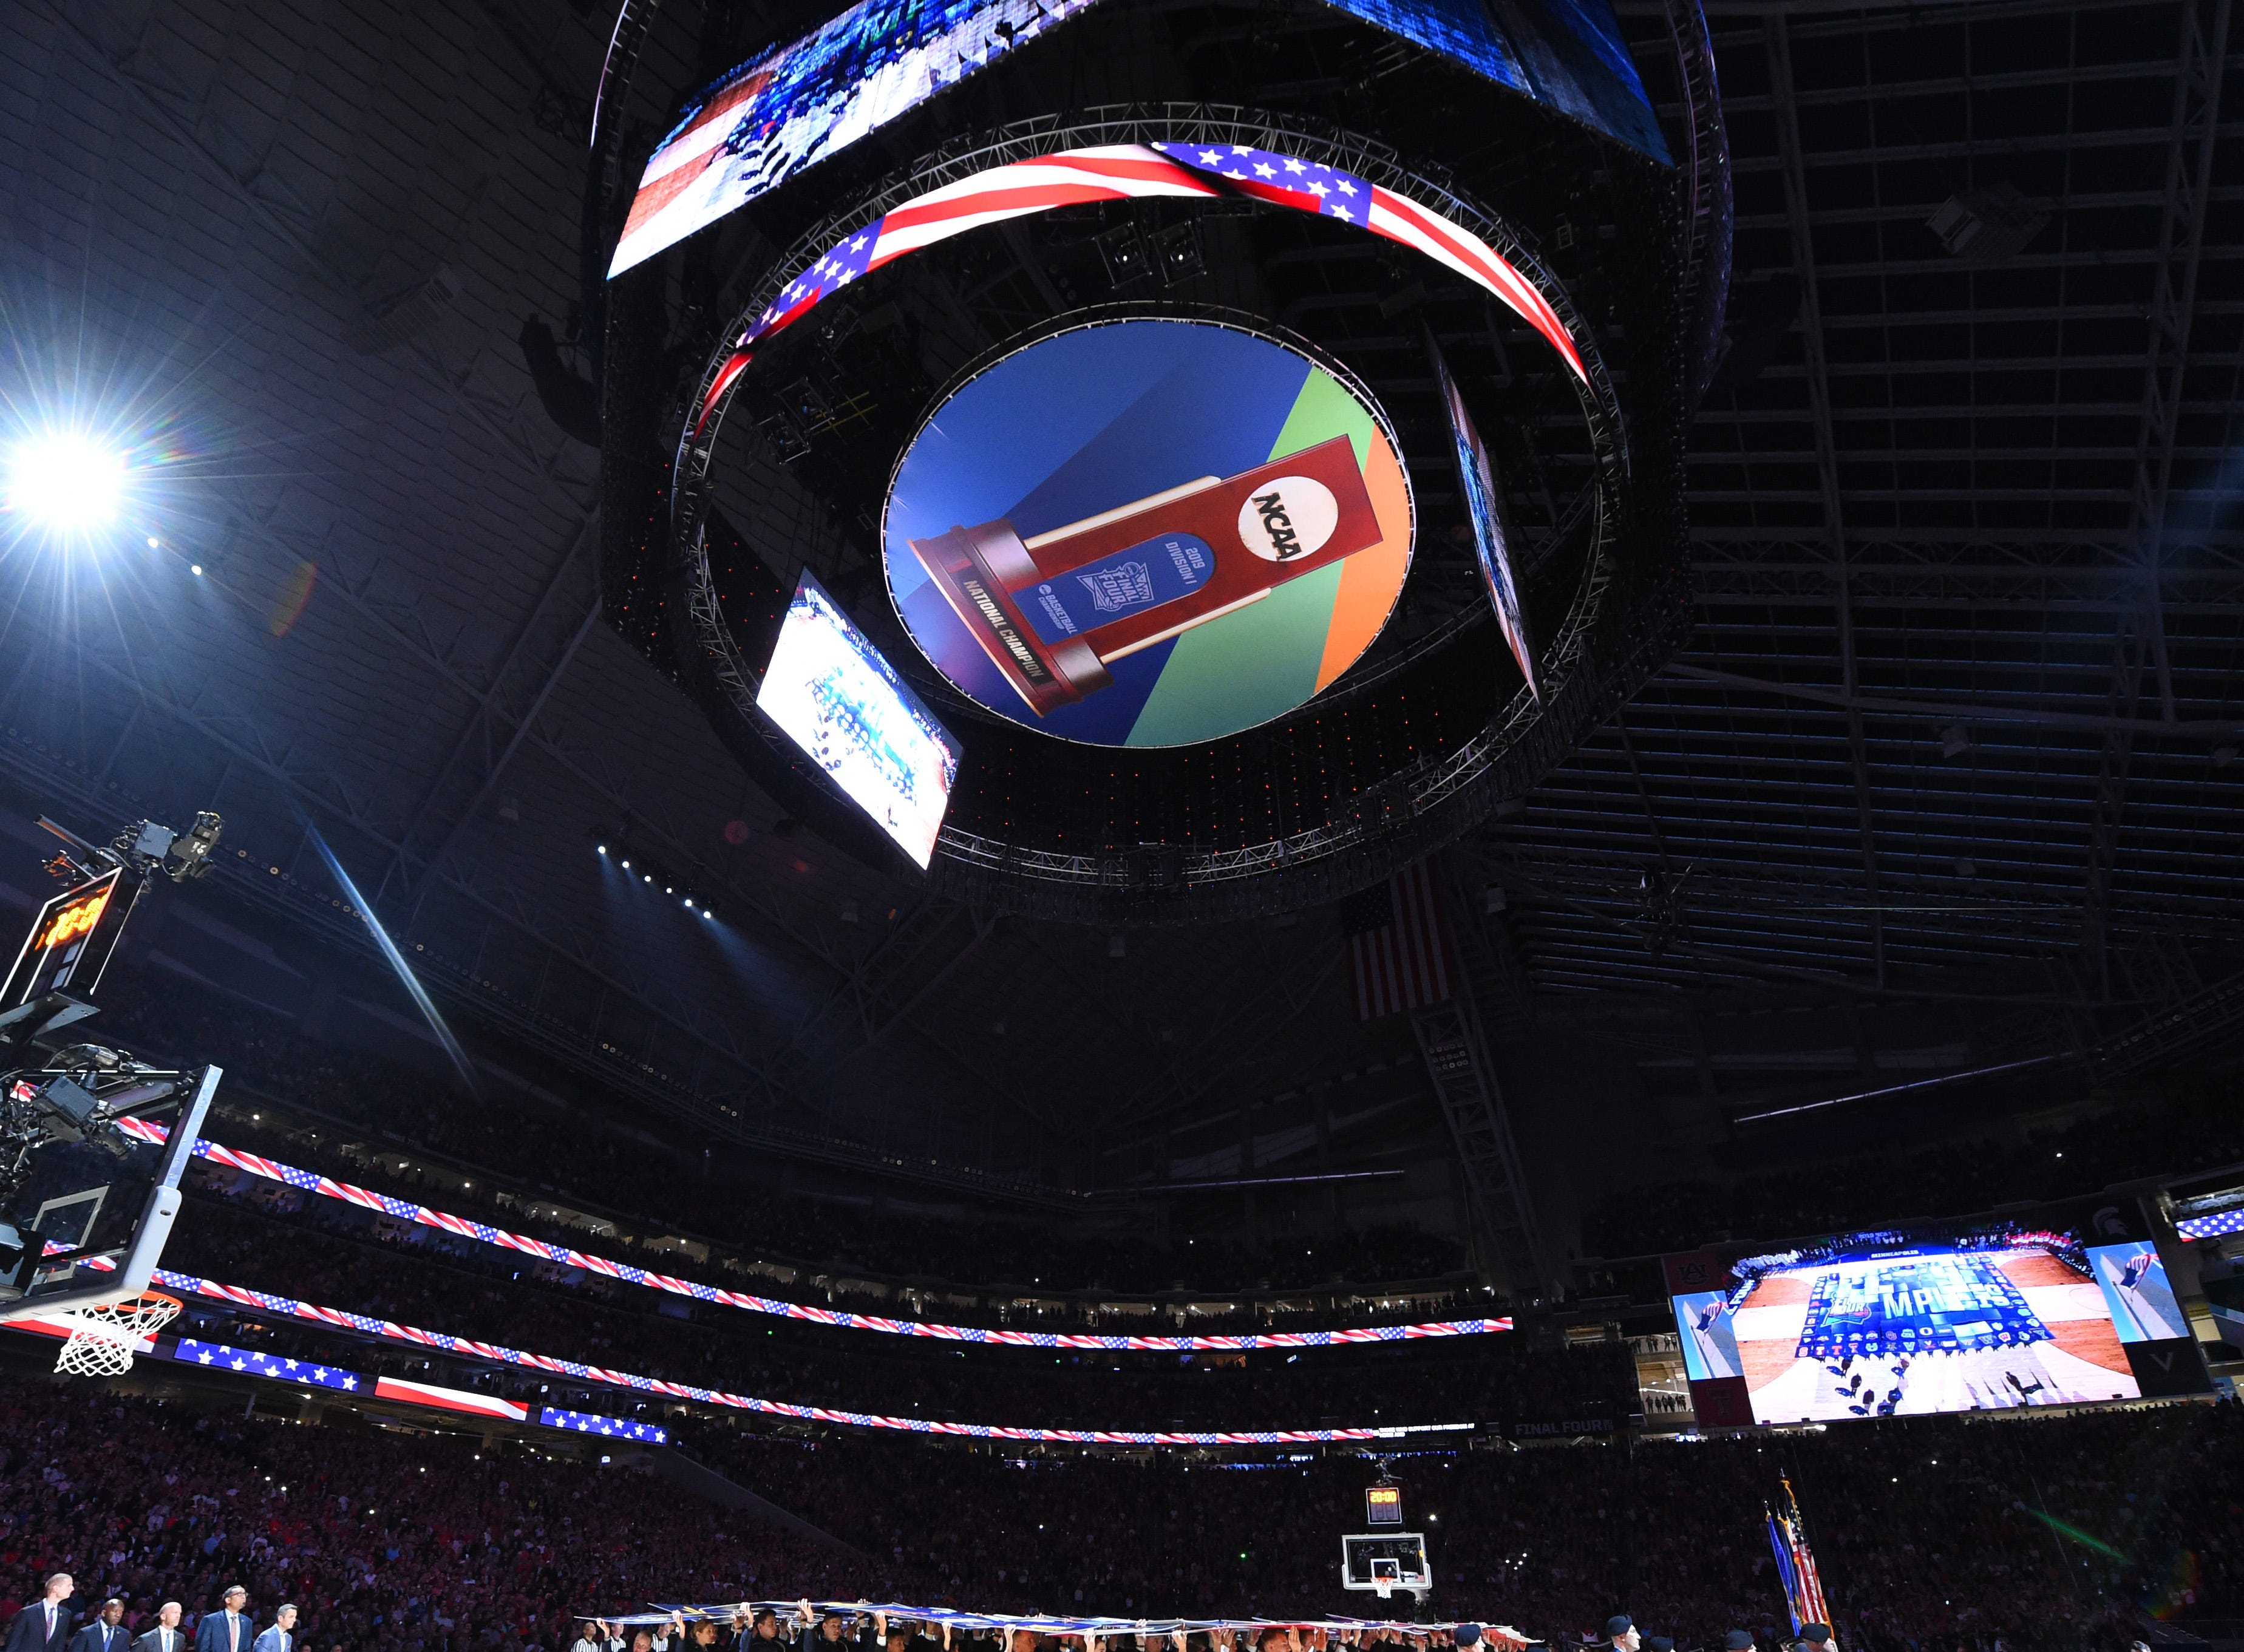 Apr 8, 2019; Minneapolis, MN, USA; A general view during the playing of the national anthem between the Texas Tech Red Raiders and the Virginia Cavaliers in the championship game of the 2019 men's Final Four at US Bank Stadium. Mandatory Credit: Robert Deutsch-USA TODAY Sports